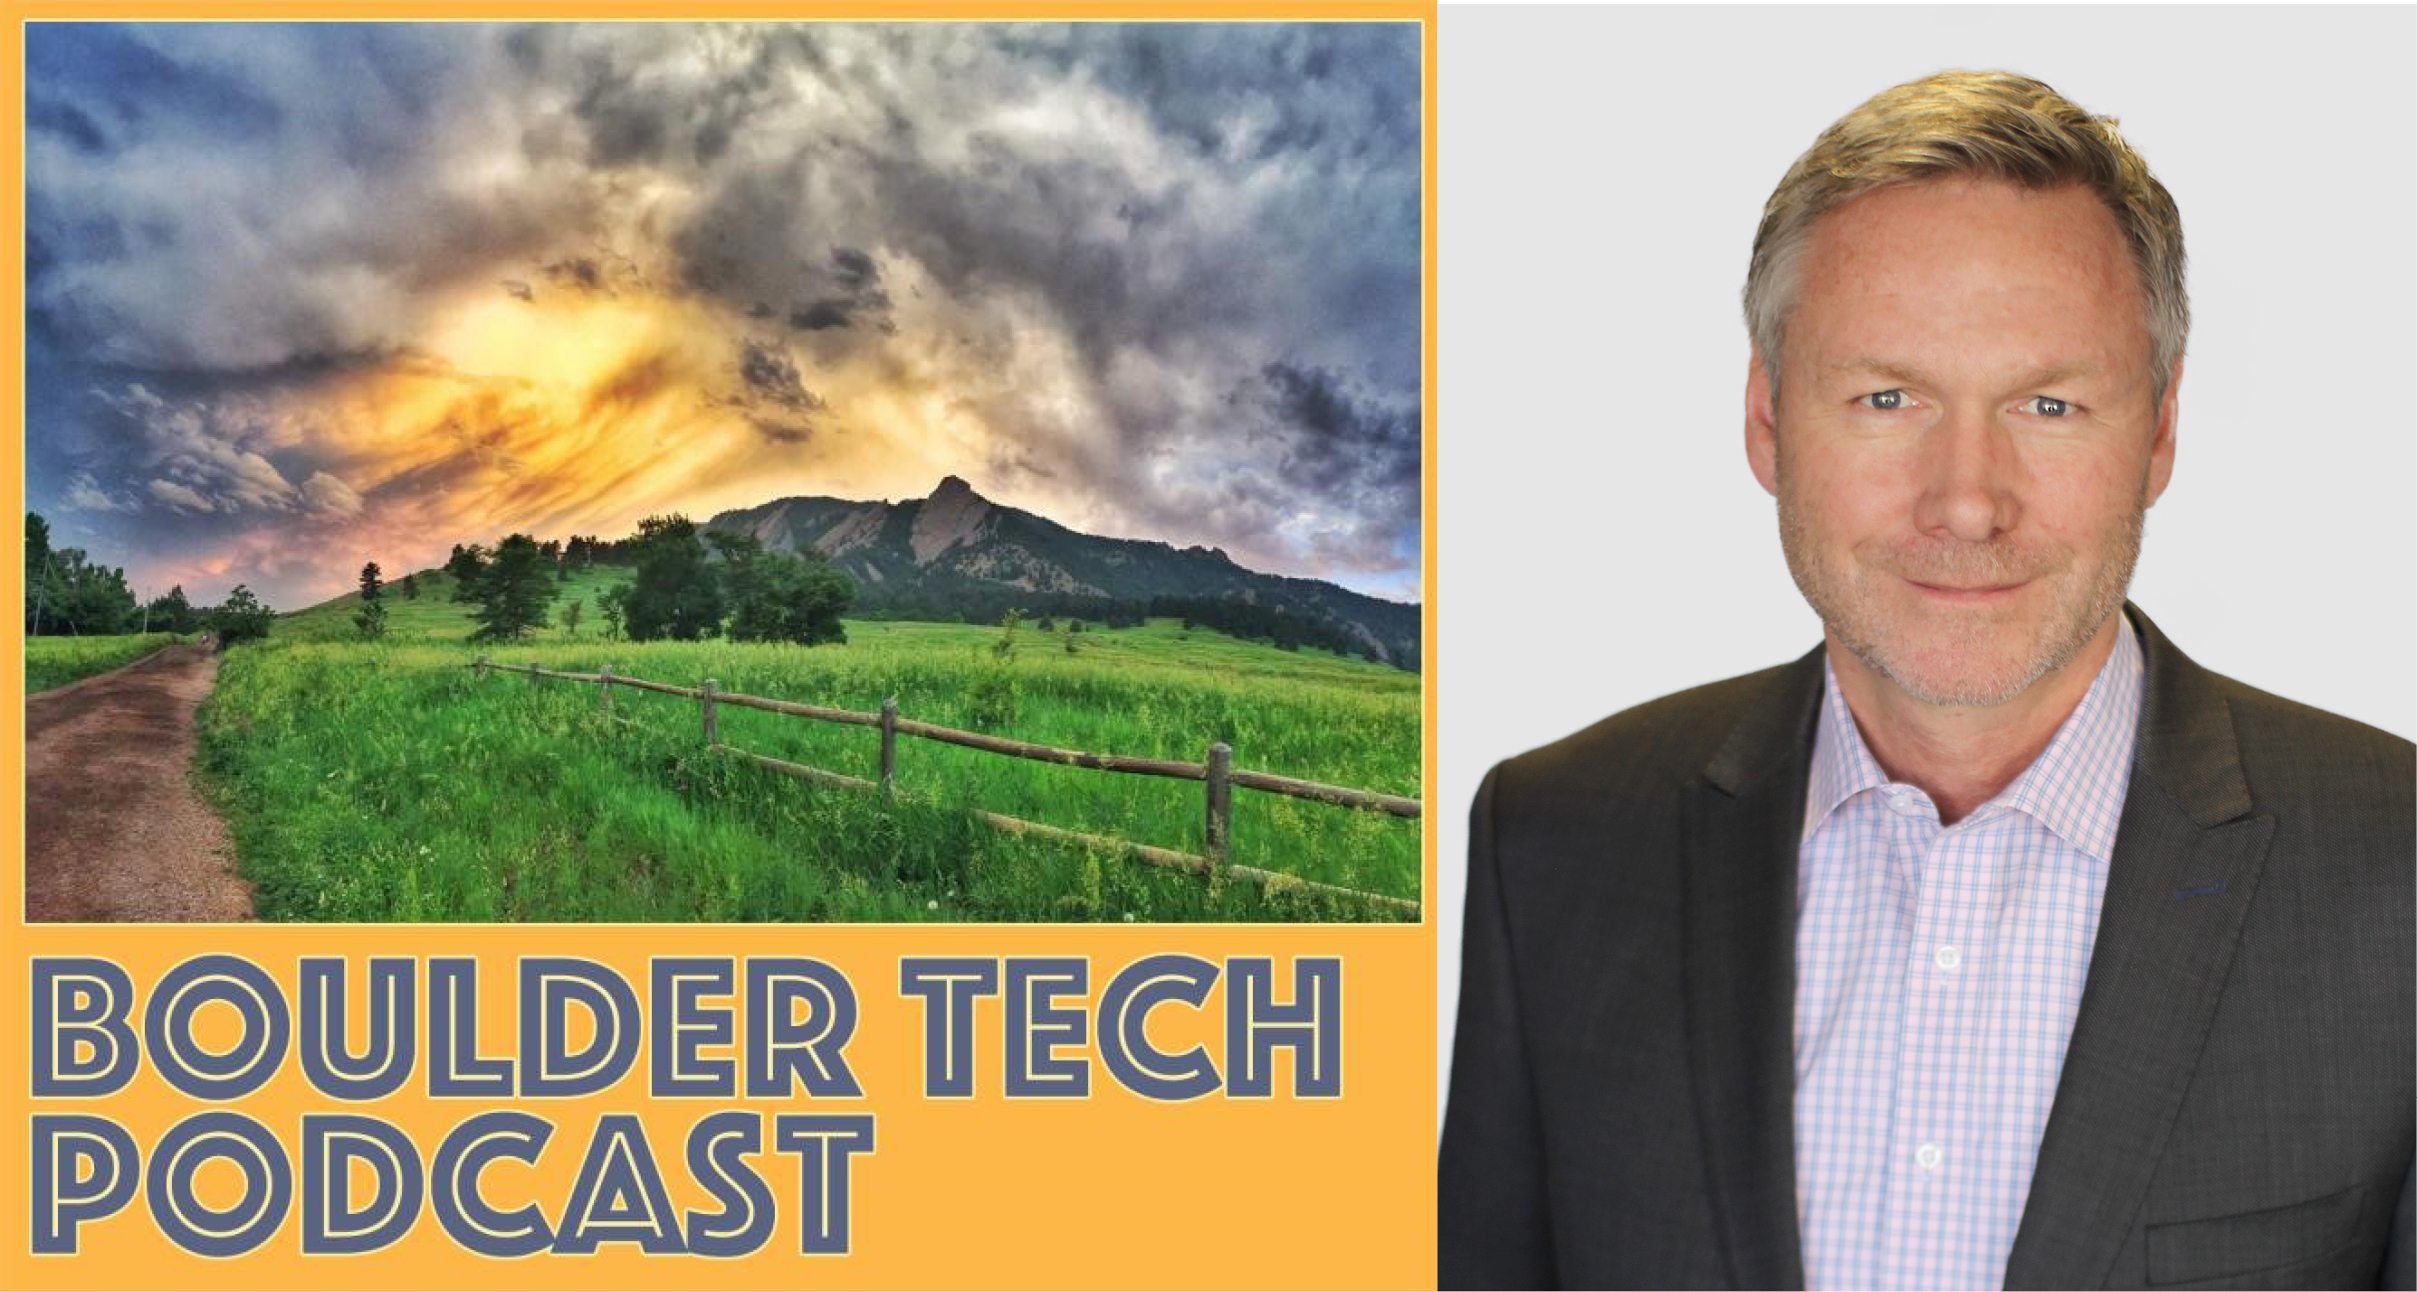 Boulder Tech Podcast with Bill Baldwin